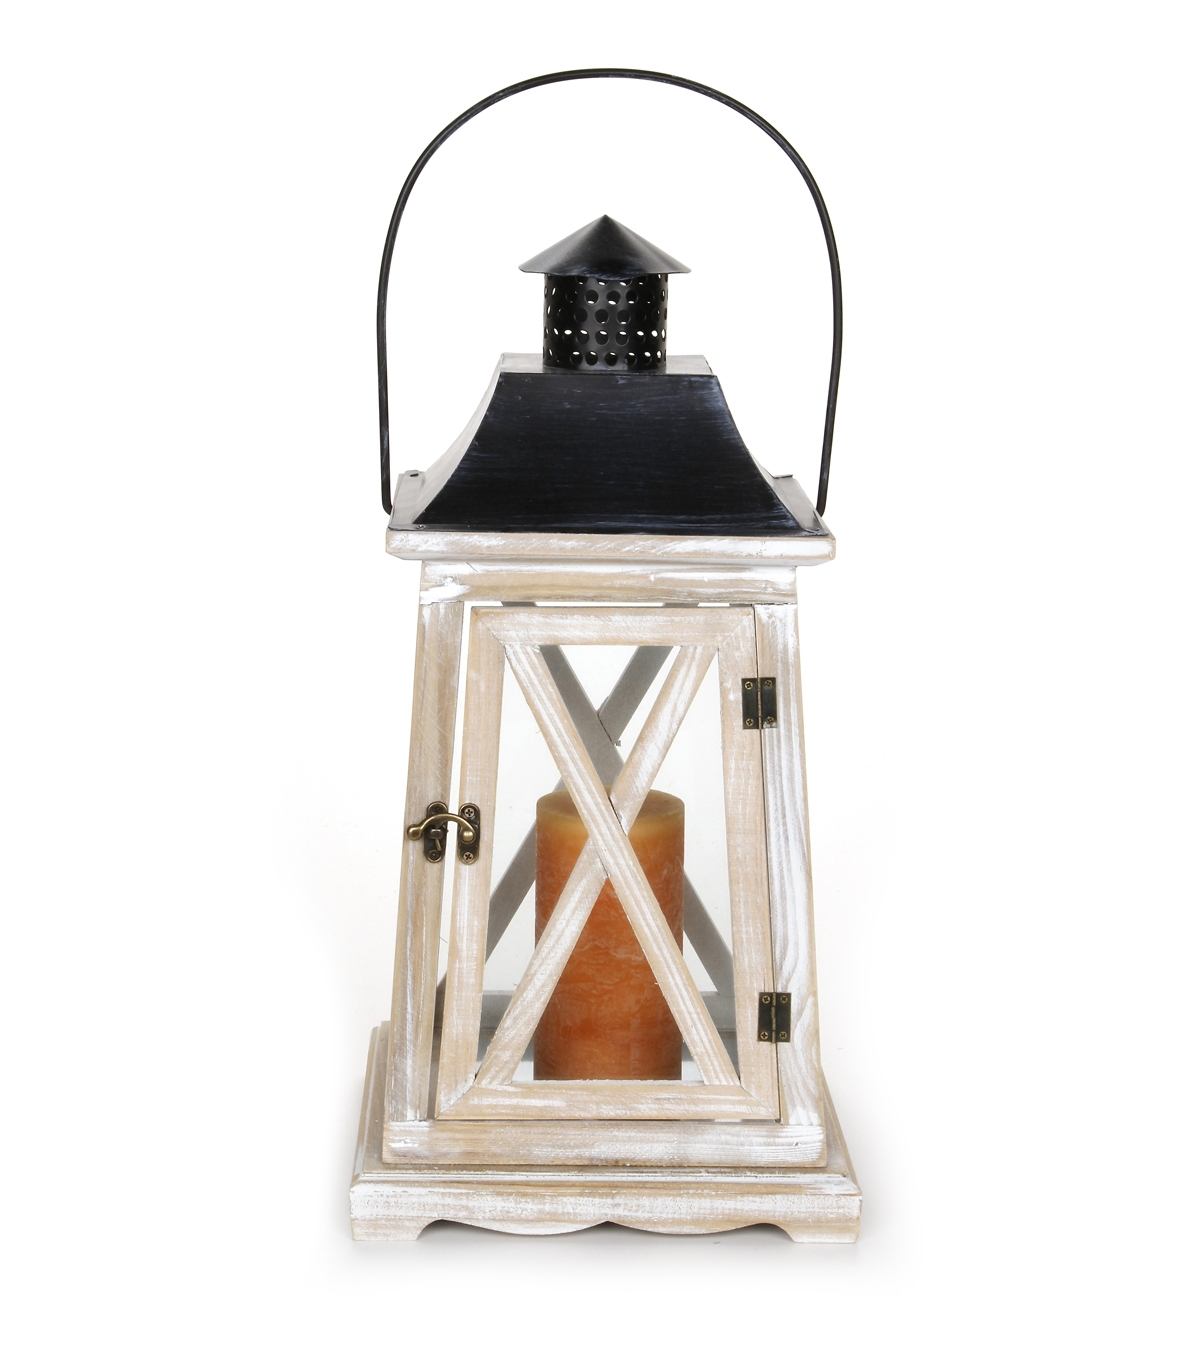 Joanns Outdoor Lanterns Intended For Most Up To Date Wooden Lantern  9 X 9 X 18 Inches (View 16 of 20)